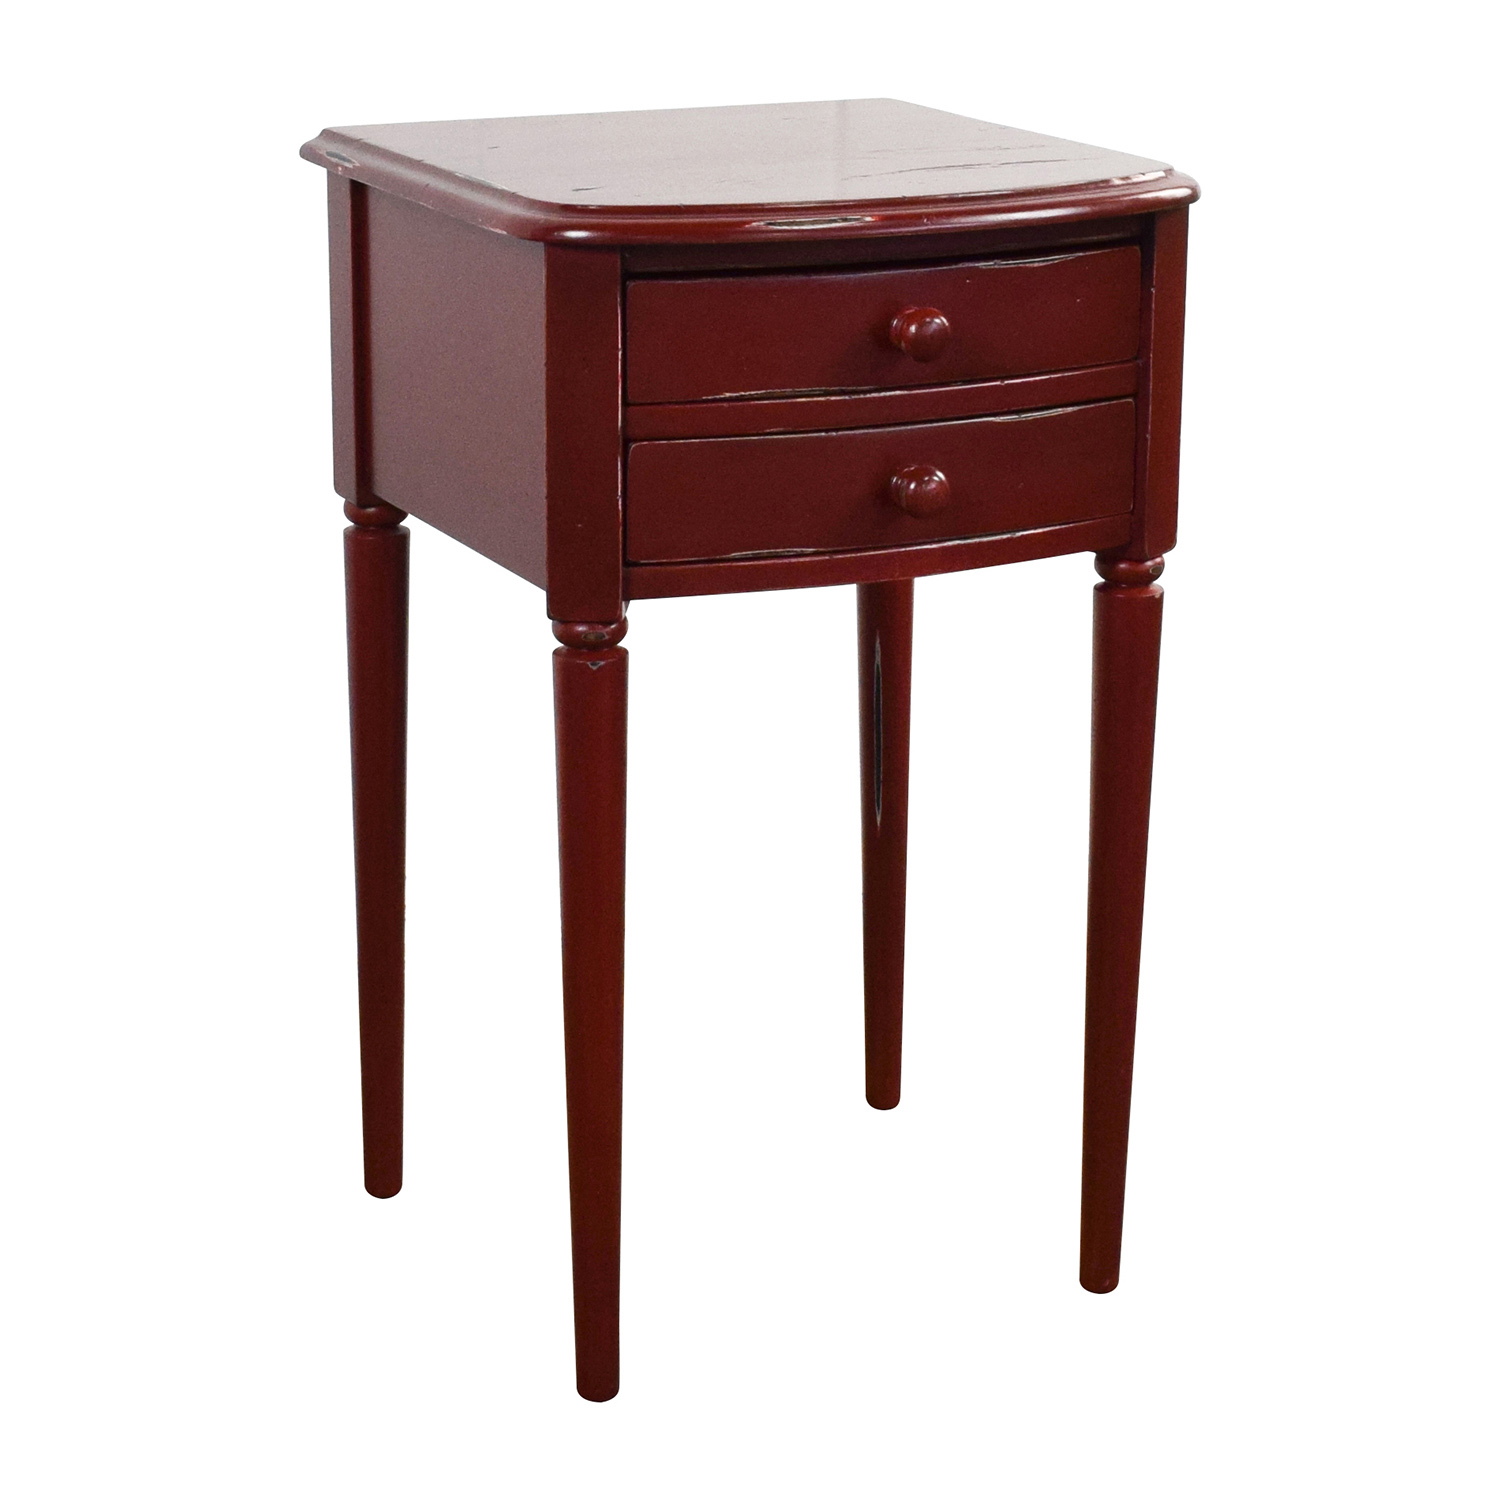 Deep Red 2-Drawer Nighstand for sale